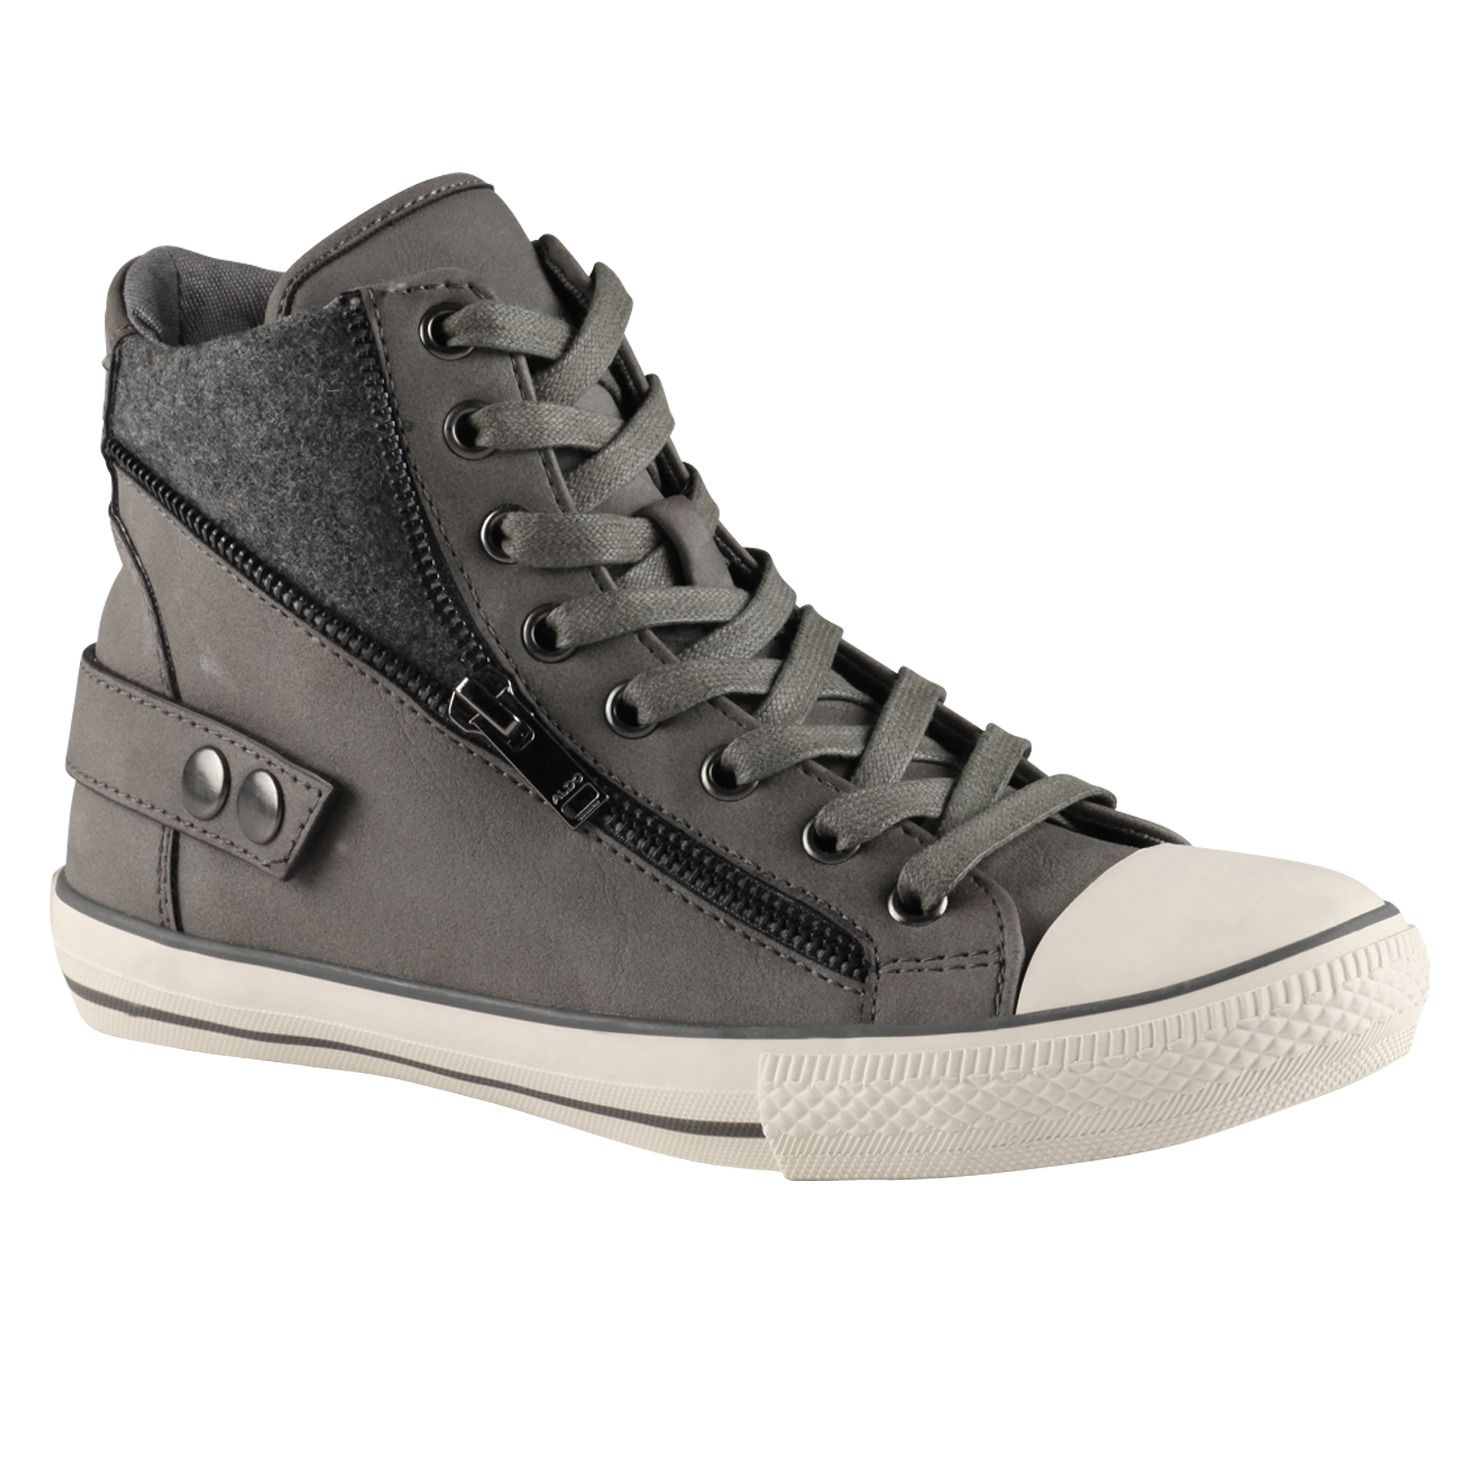 6b4dc8c26284 OFFENGE - women s sneakers shoes for sale at ALDO Shoes. 70.00